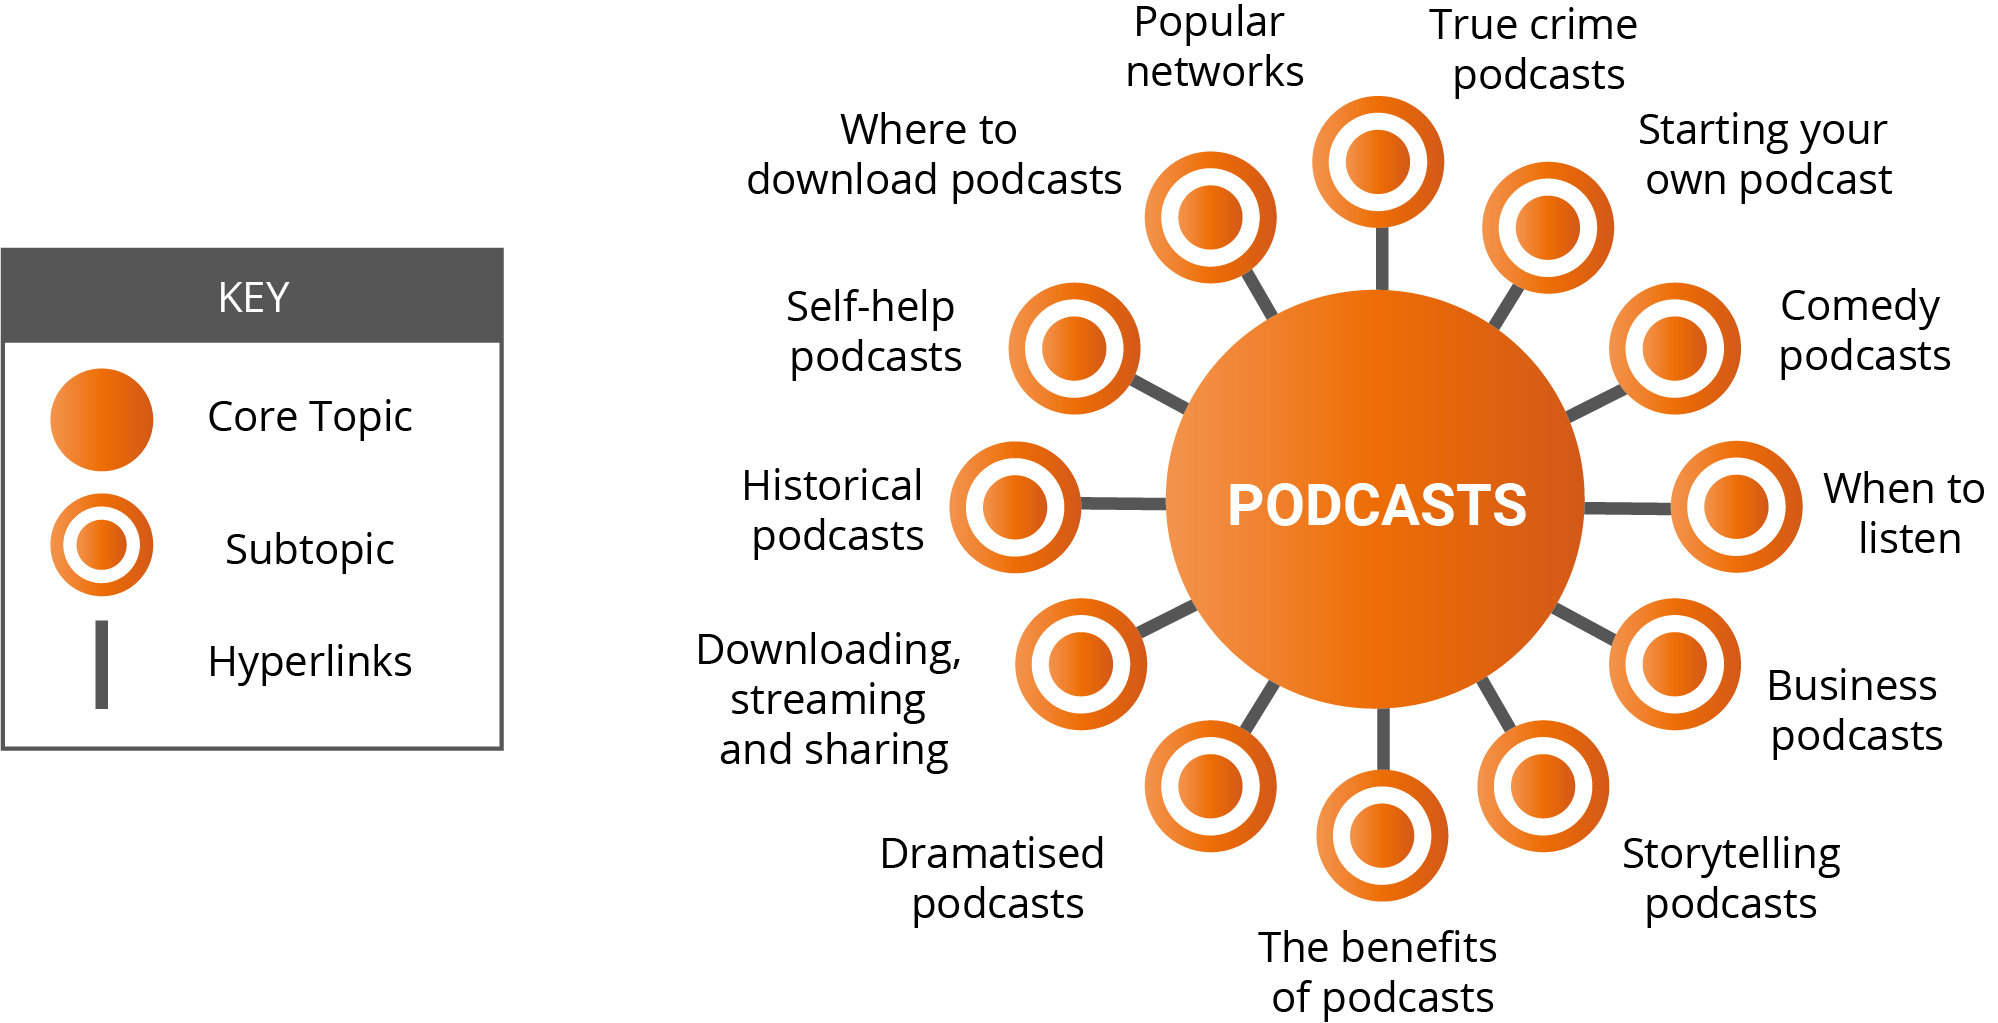 Podcasts pillar page plan